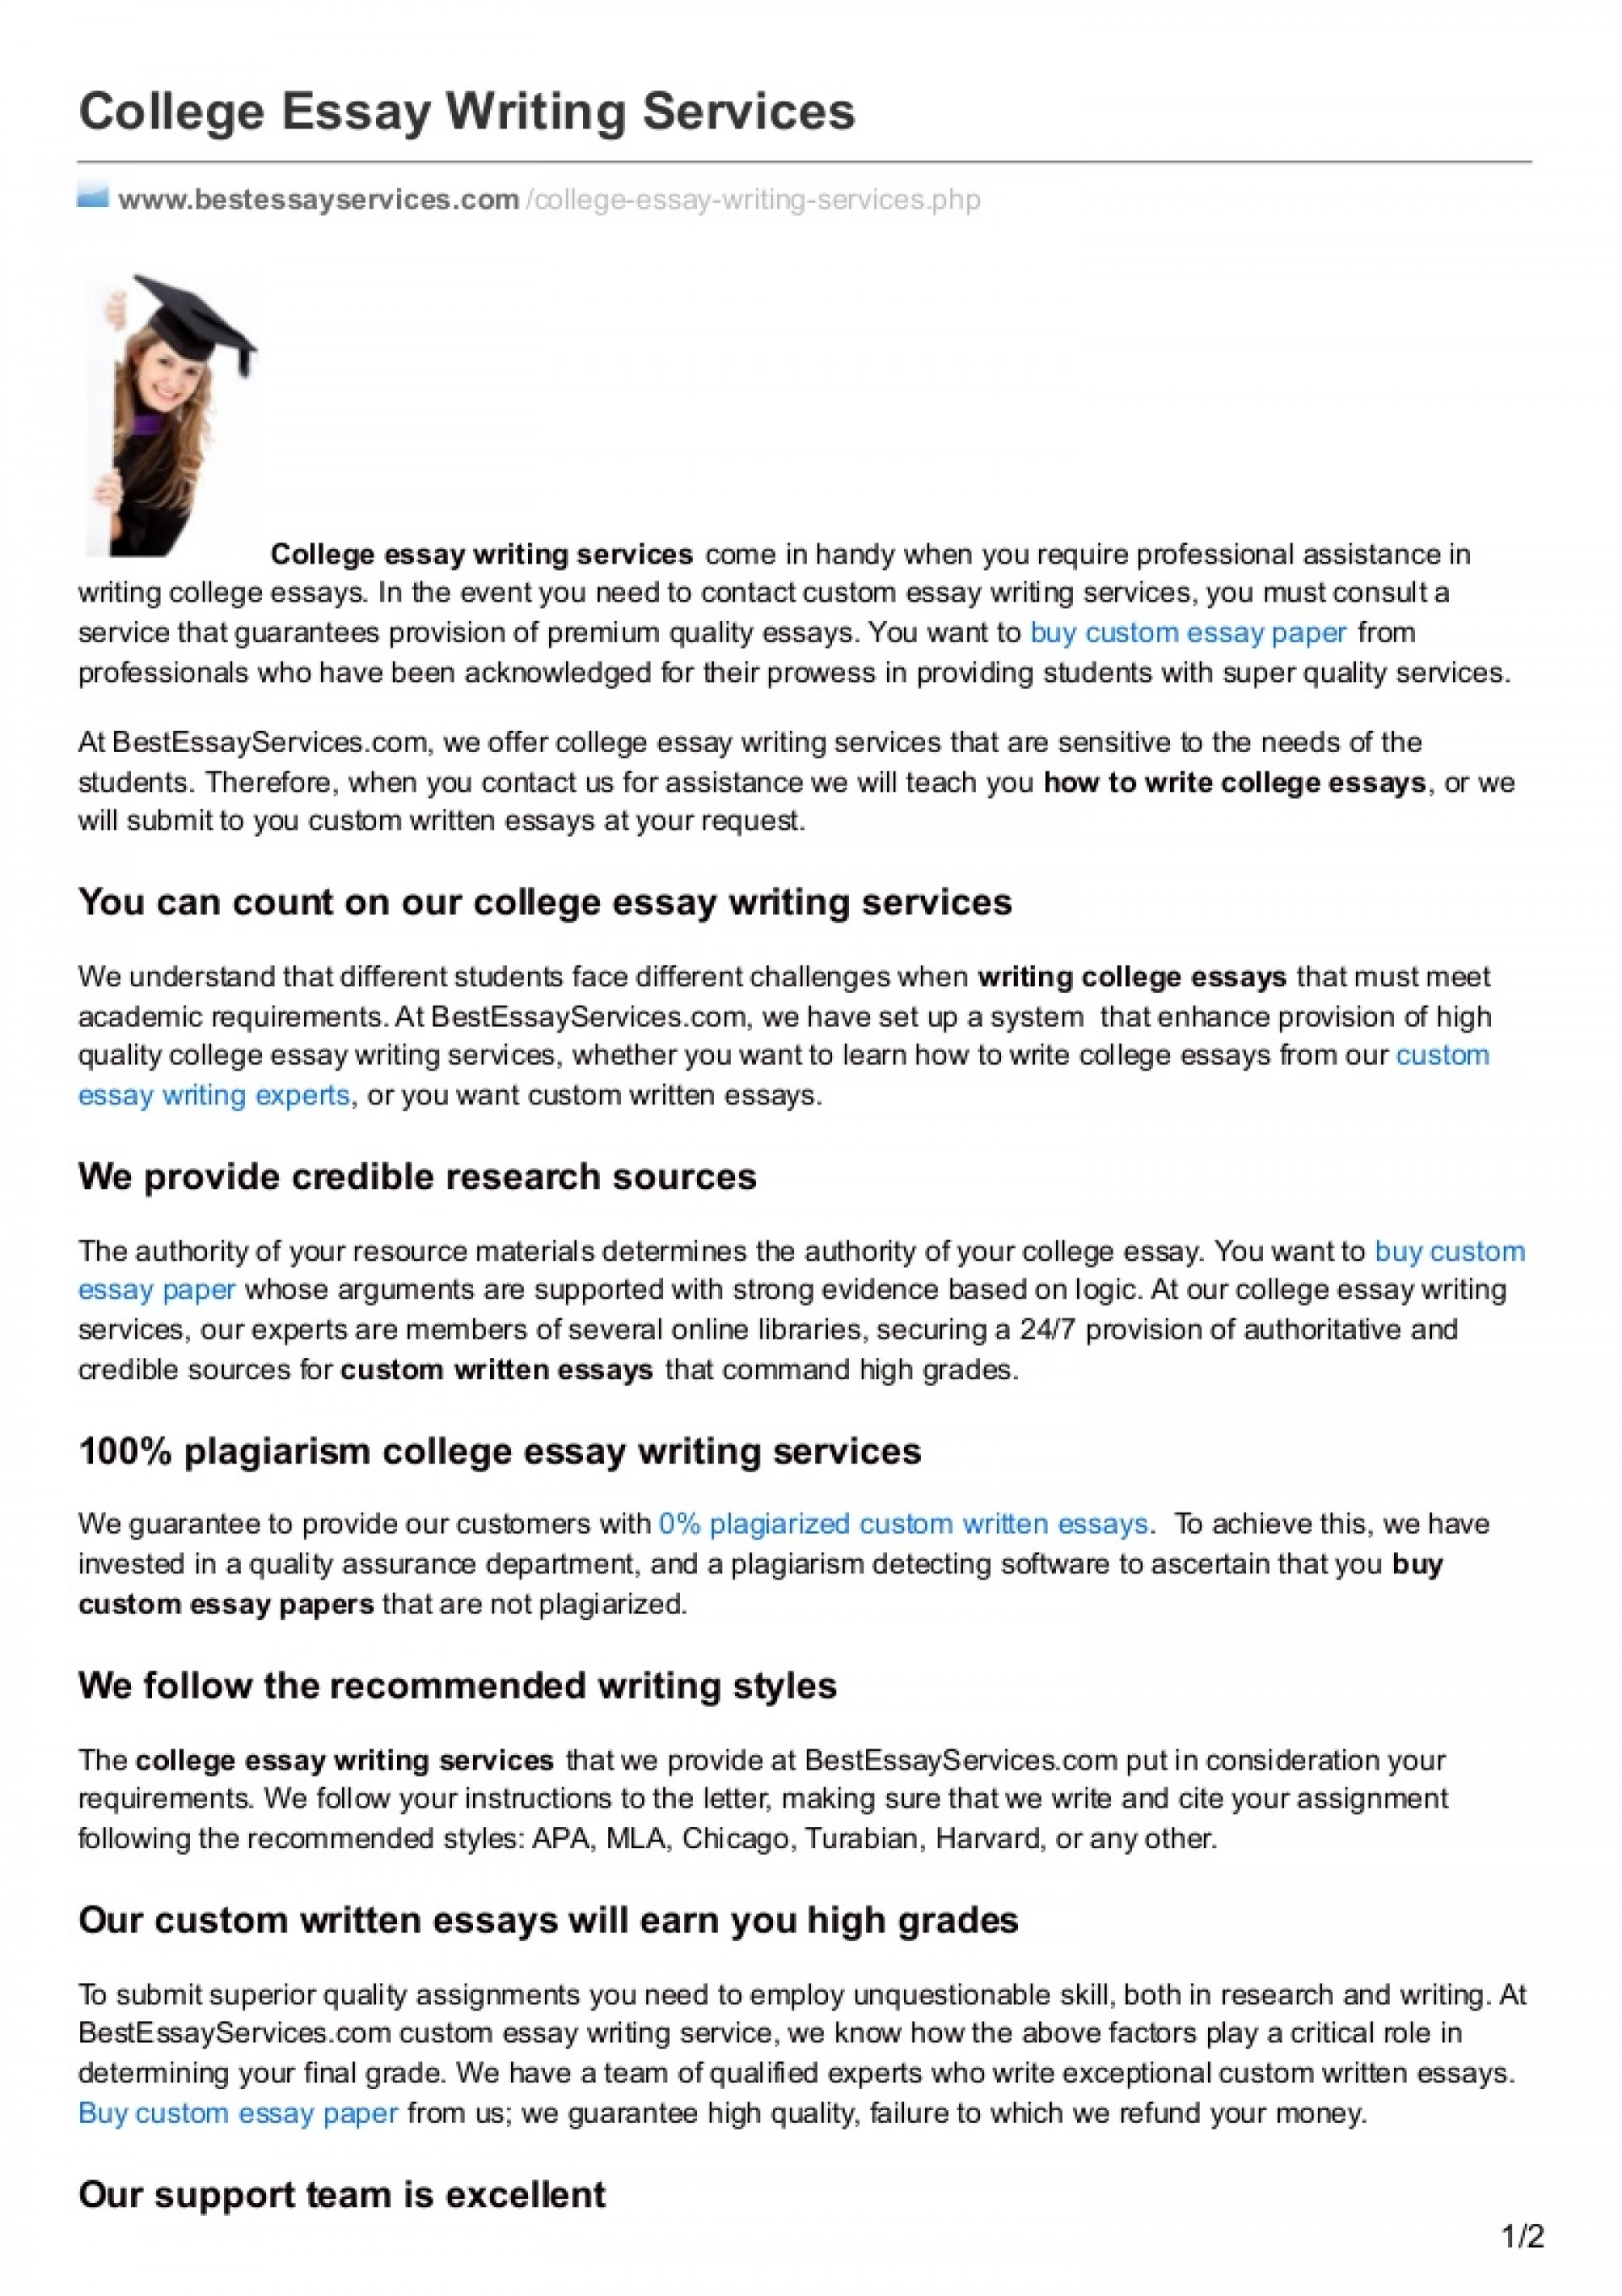 011 Bestessayservices Com College Essay Writing Services I Want To Write Essays For Money Thumbn Best University High School Reddit 1920